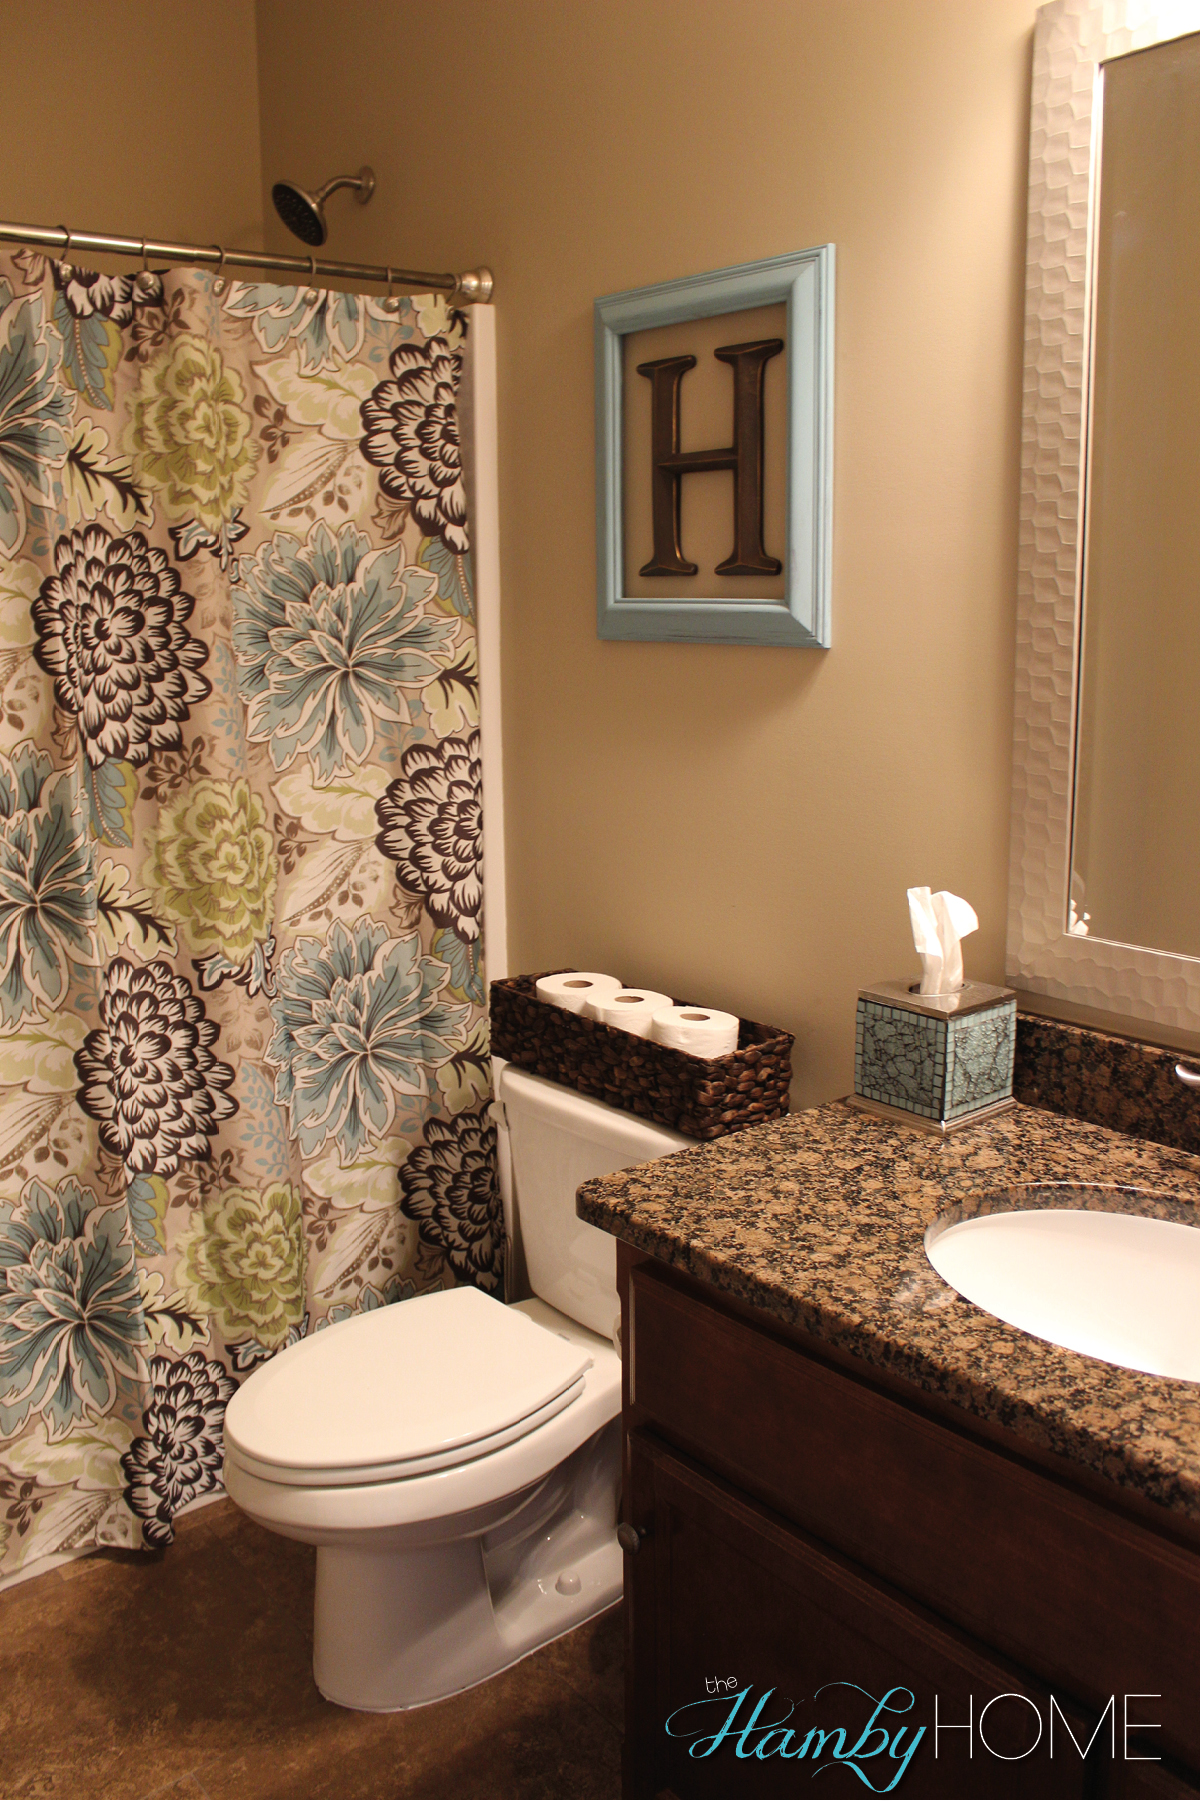 Tgif house tour guest bathroom the hamby home for Decorated bathrooms photos